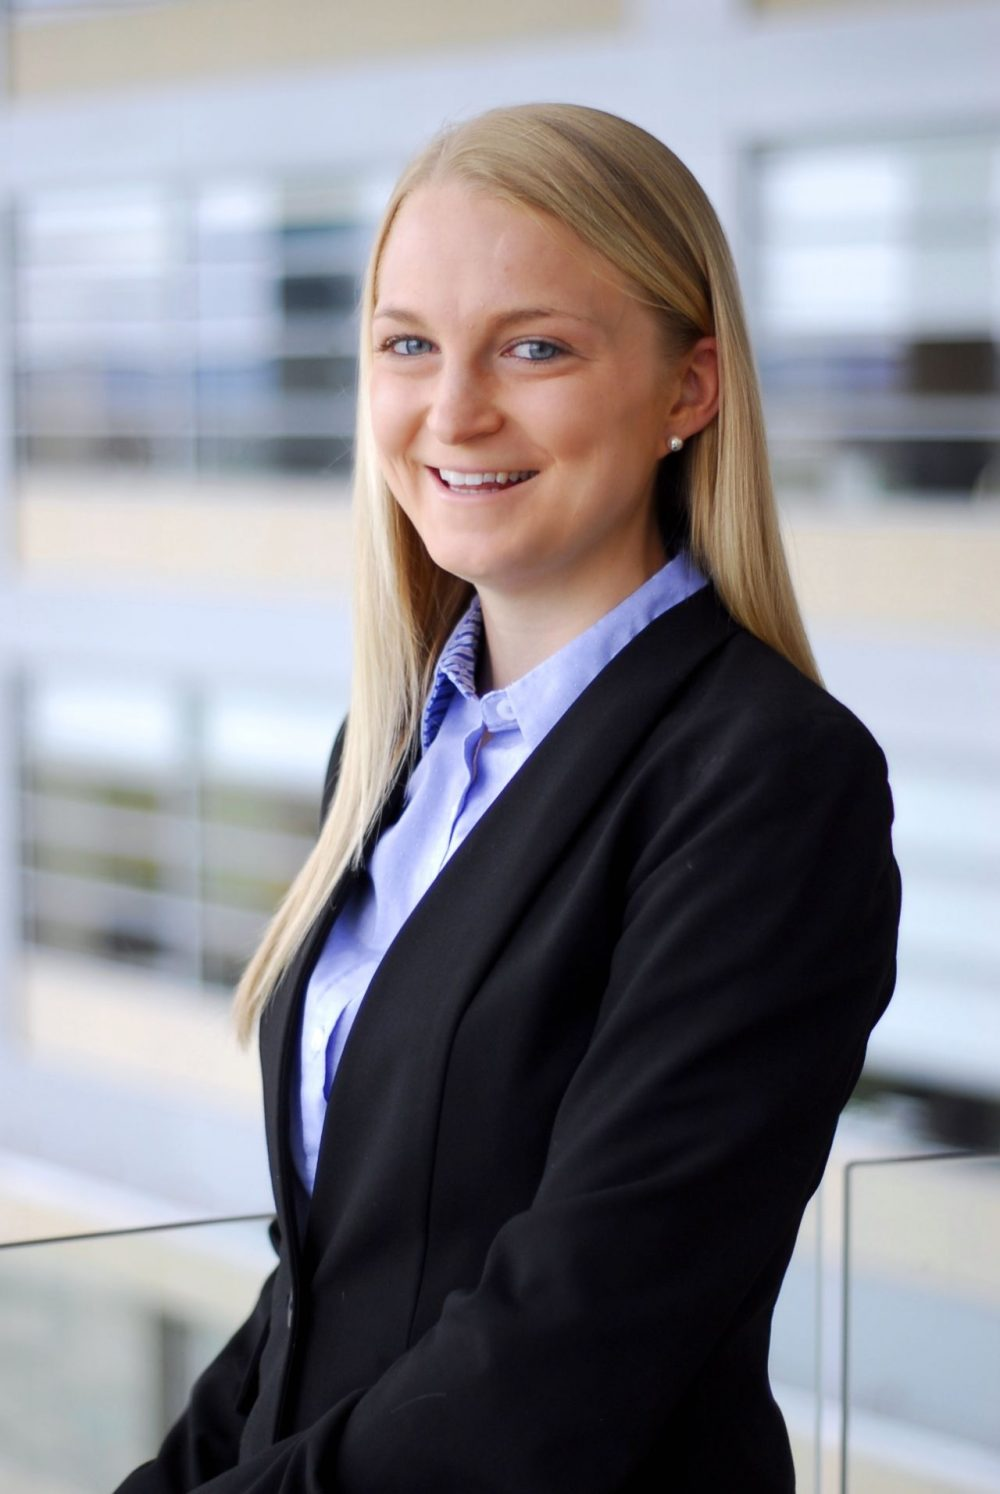 Emily Waschenko, recent graduate of the Smeal College of Business at Penn State. (Courtesy/Emily Washenko)